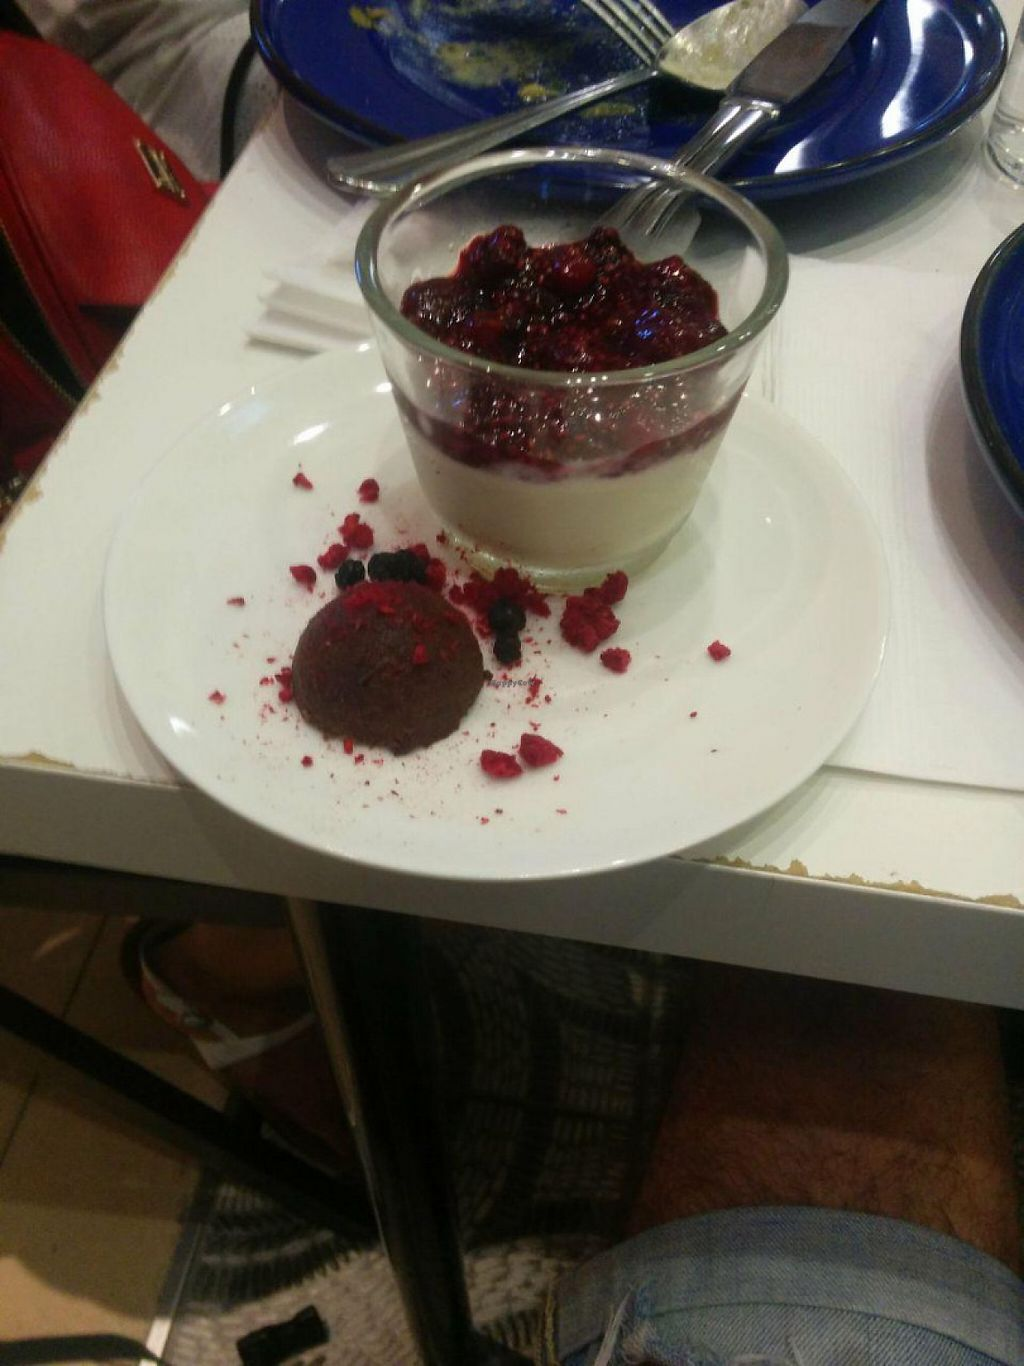 """Photo of Maya Cafe  by <a href=""""/members/profile/FlokiTheCat"""">FlokiTheCat</a> <br/>Pannacotta with chia berry jam <br/> June 4, 2017  - <a href='/contact/abuse/image/61407/265572'>Report</a>"""